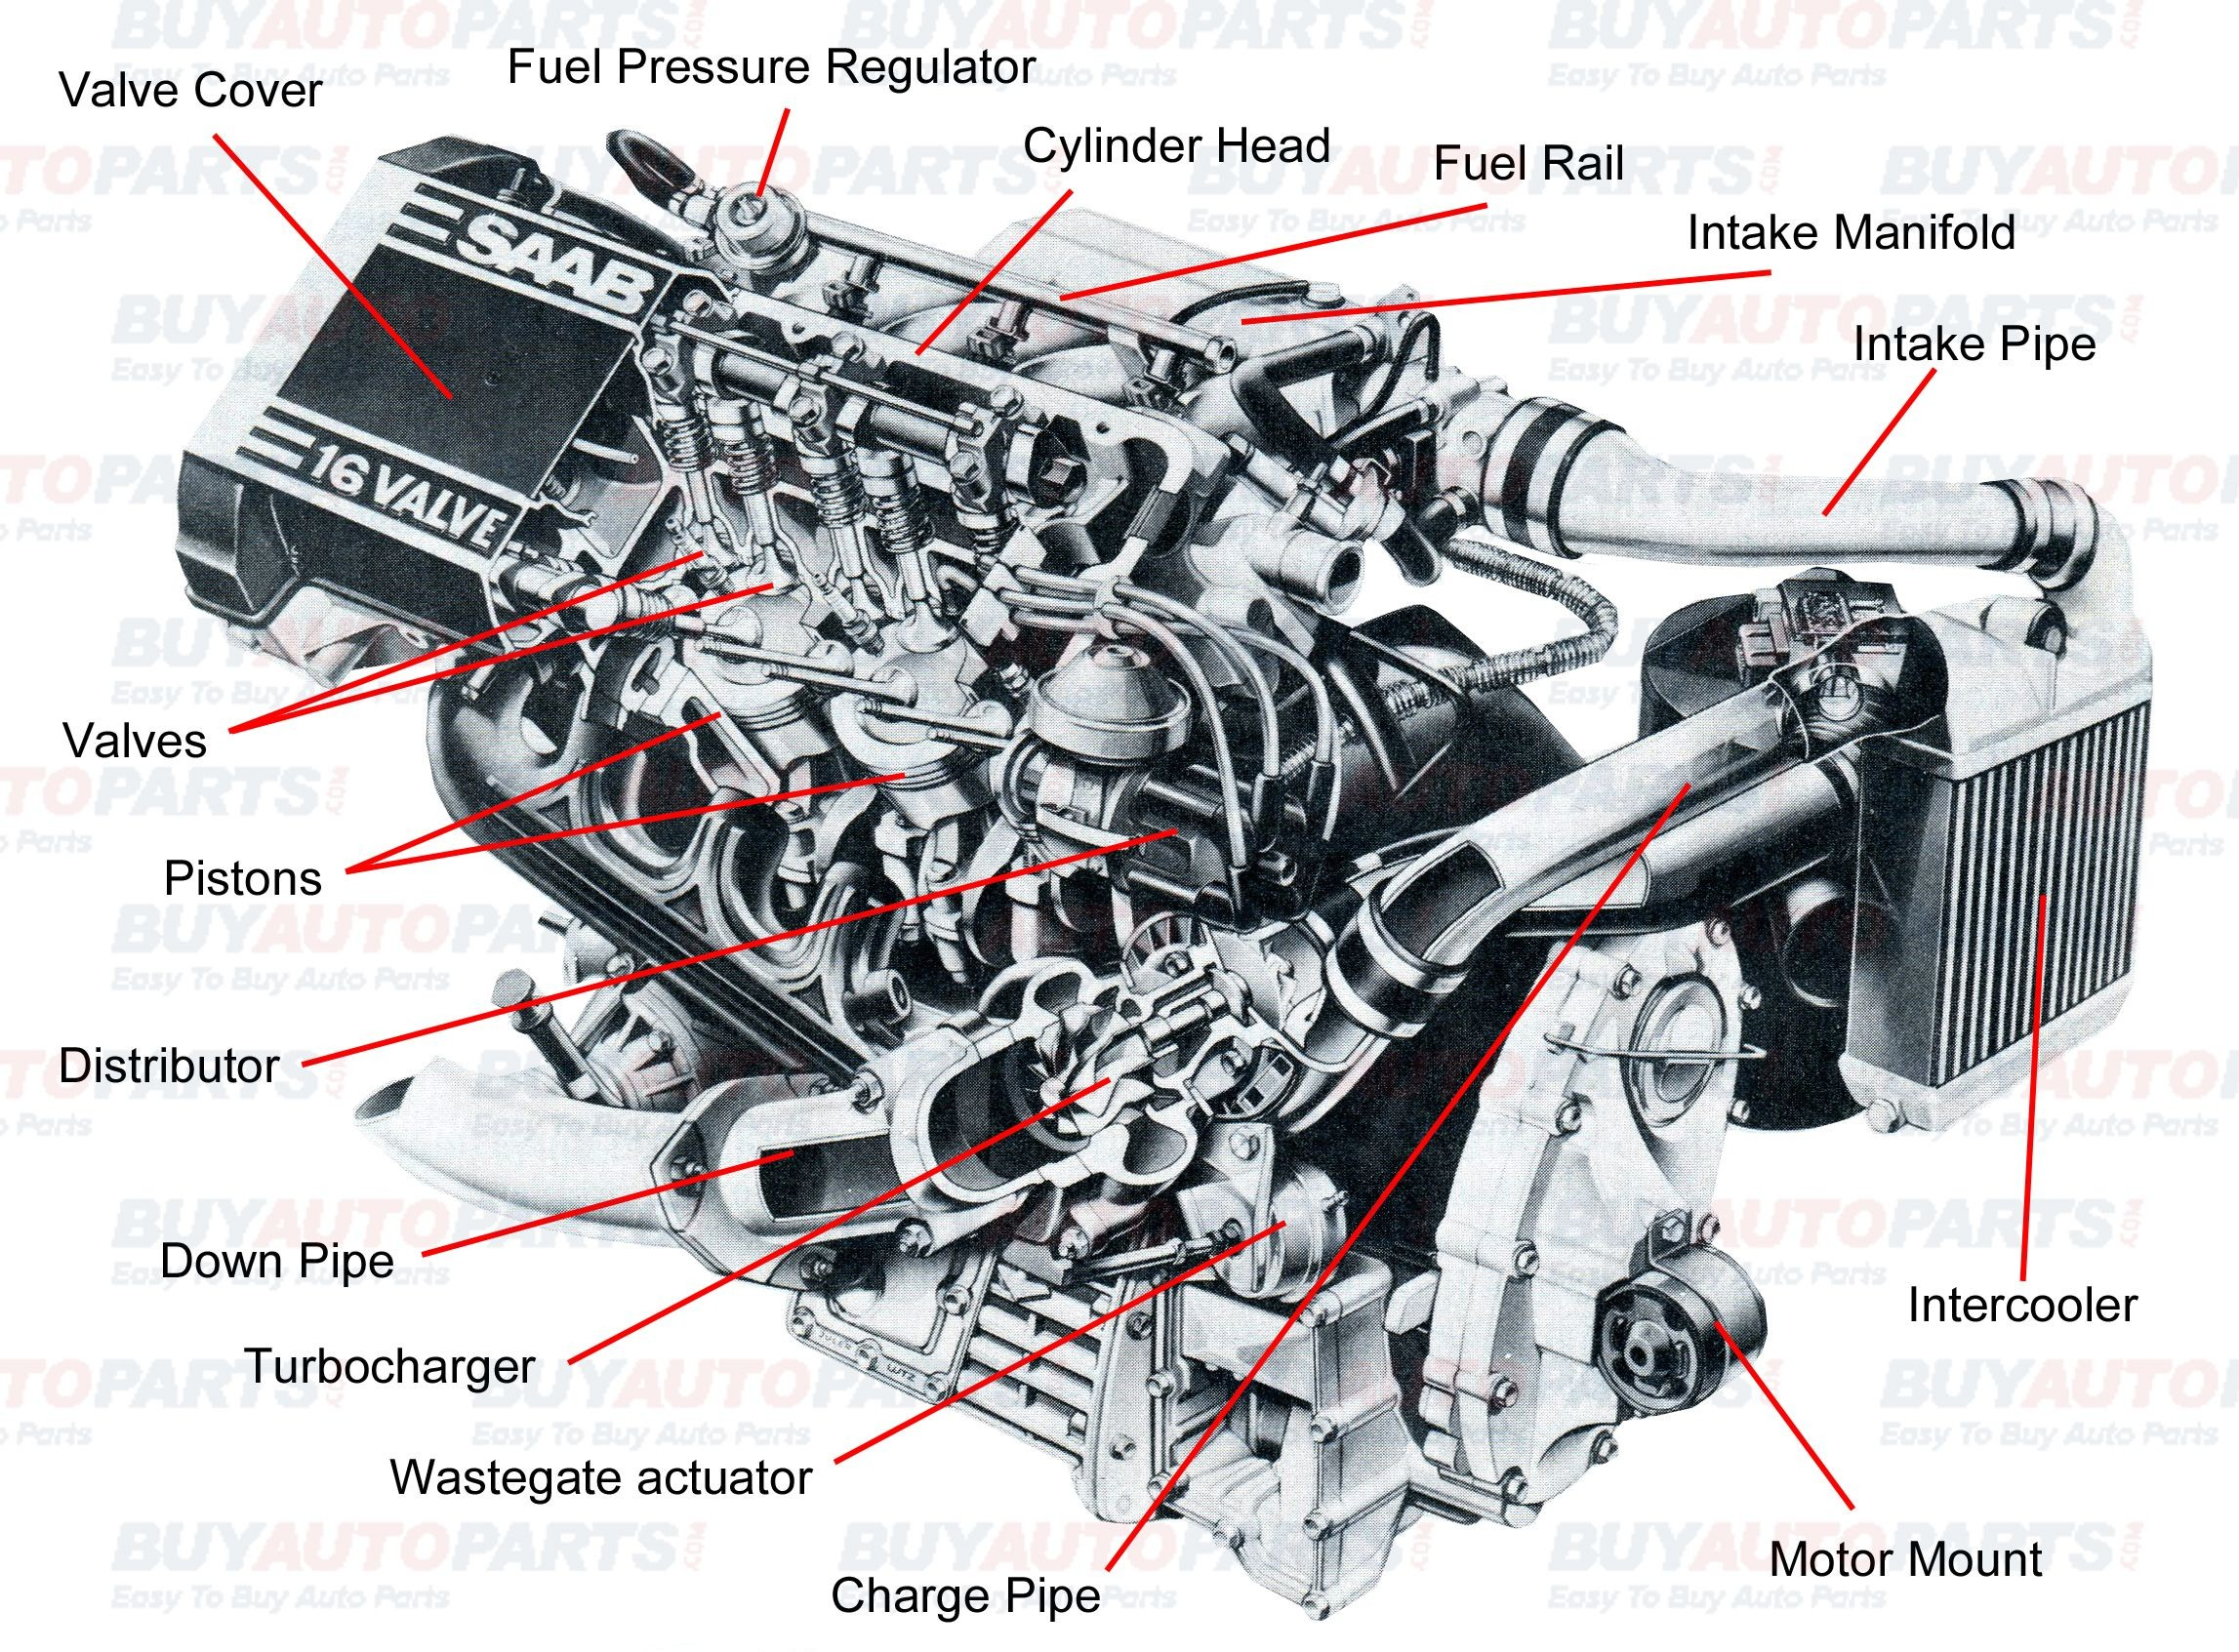 Diagram Of Car Components Porsche 944 Engine Oil Flow All Internal Bustion Engines Have The Same Basic Ponents